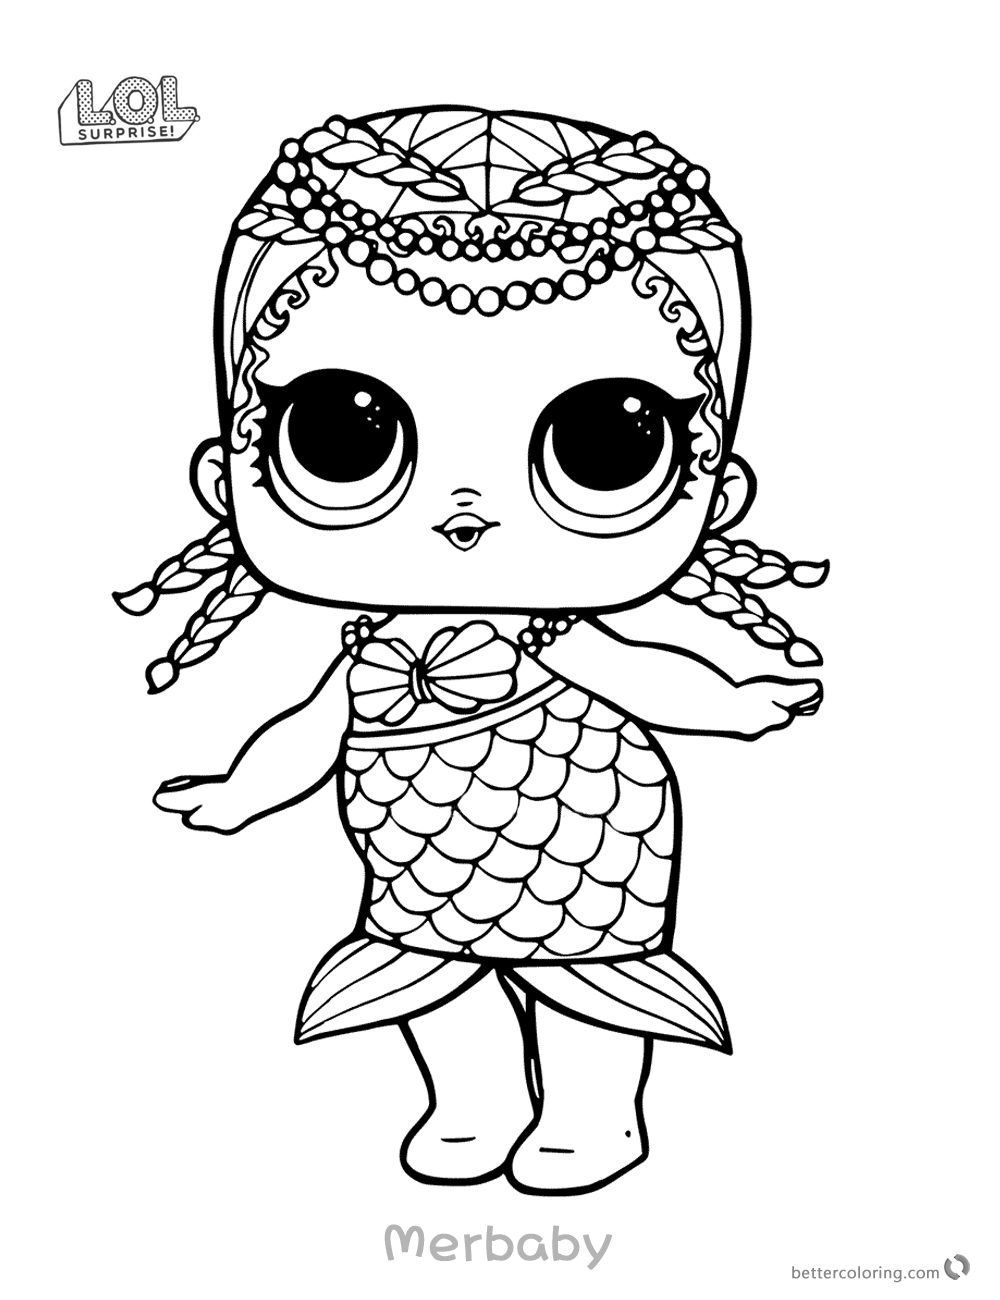 900 Top Lol Surprise Coloring Pages To Print  Images